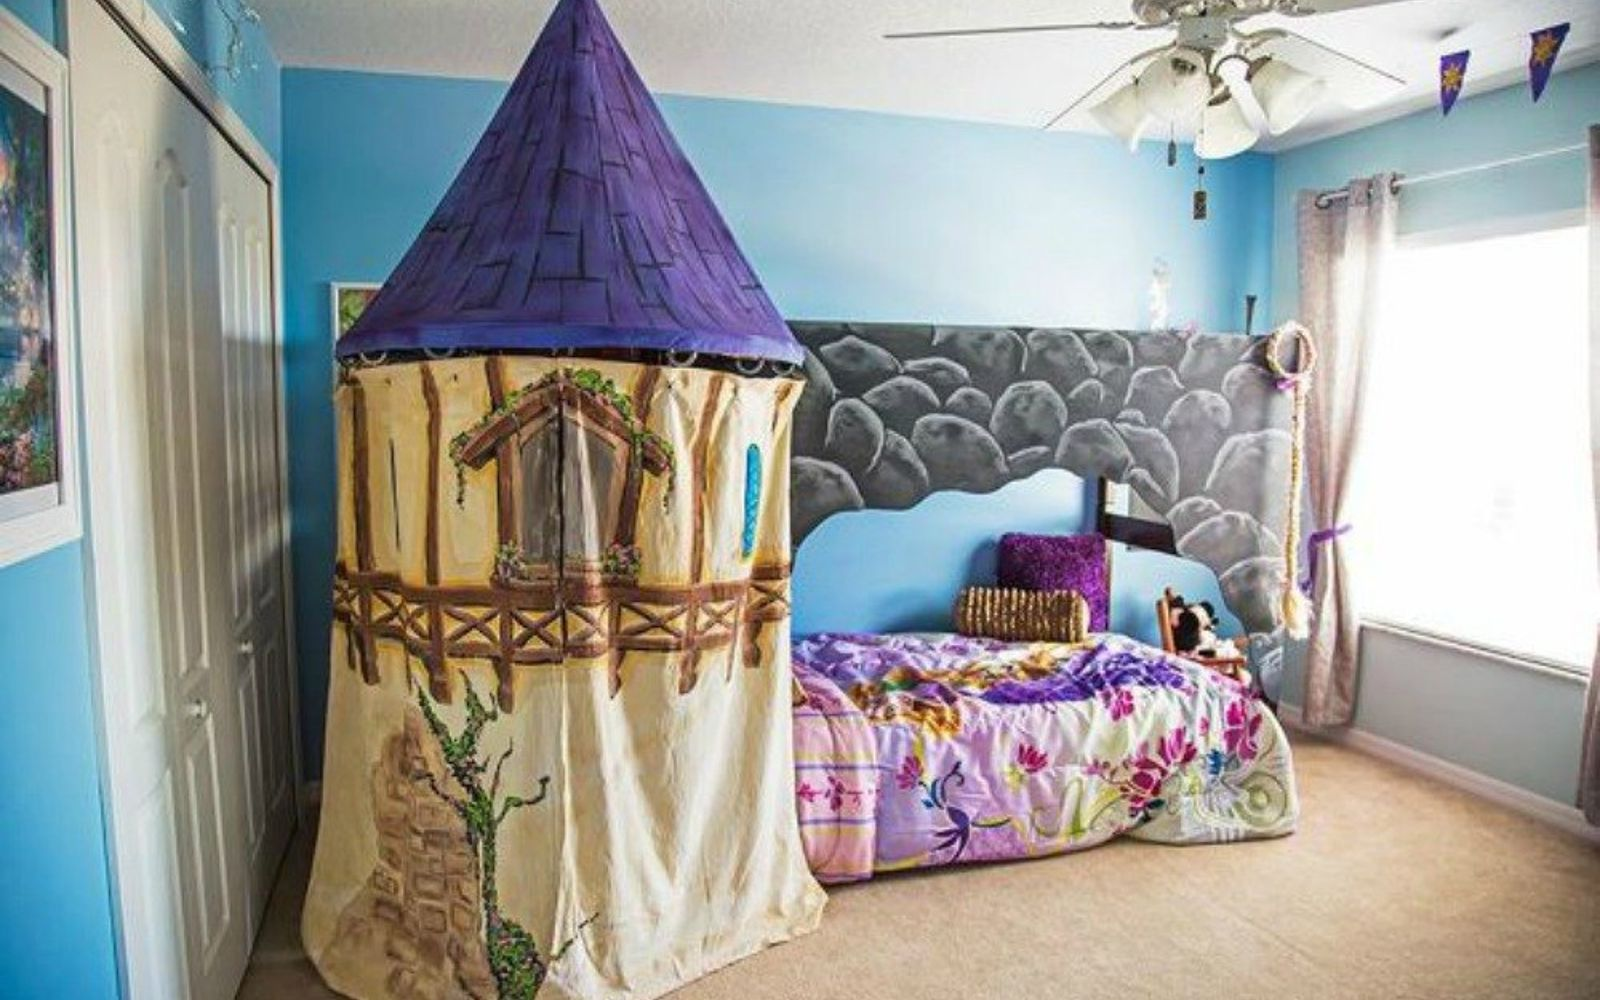 Coolest Room Ideas give your kids the coolest bedrooms with these 13 jaw-dropping